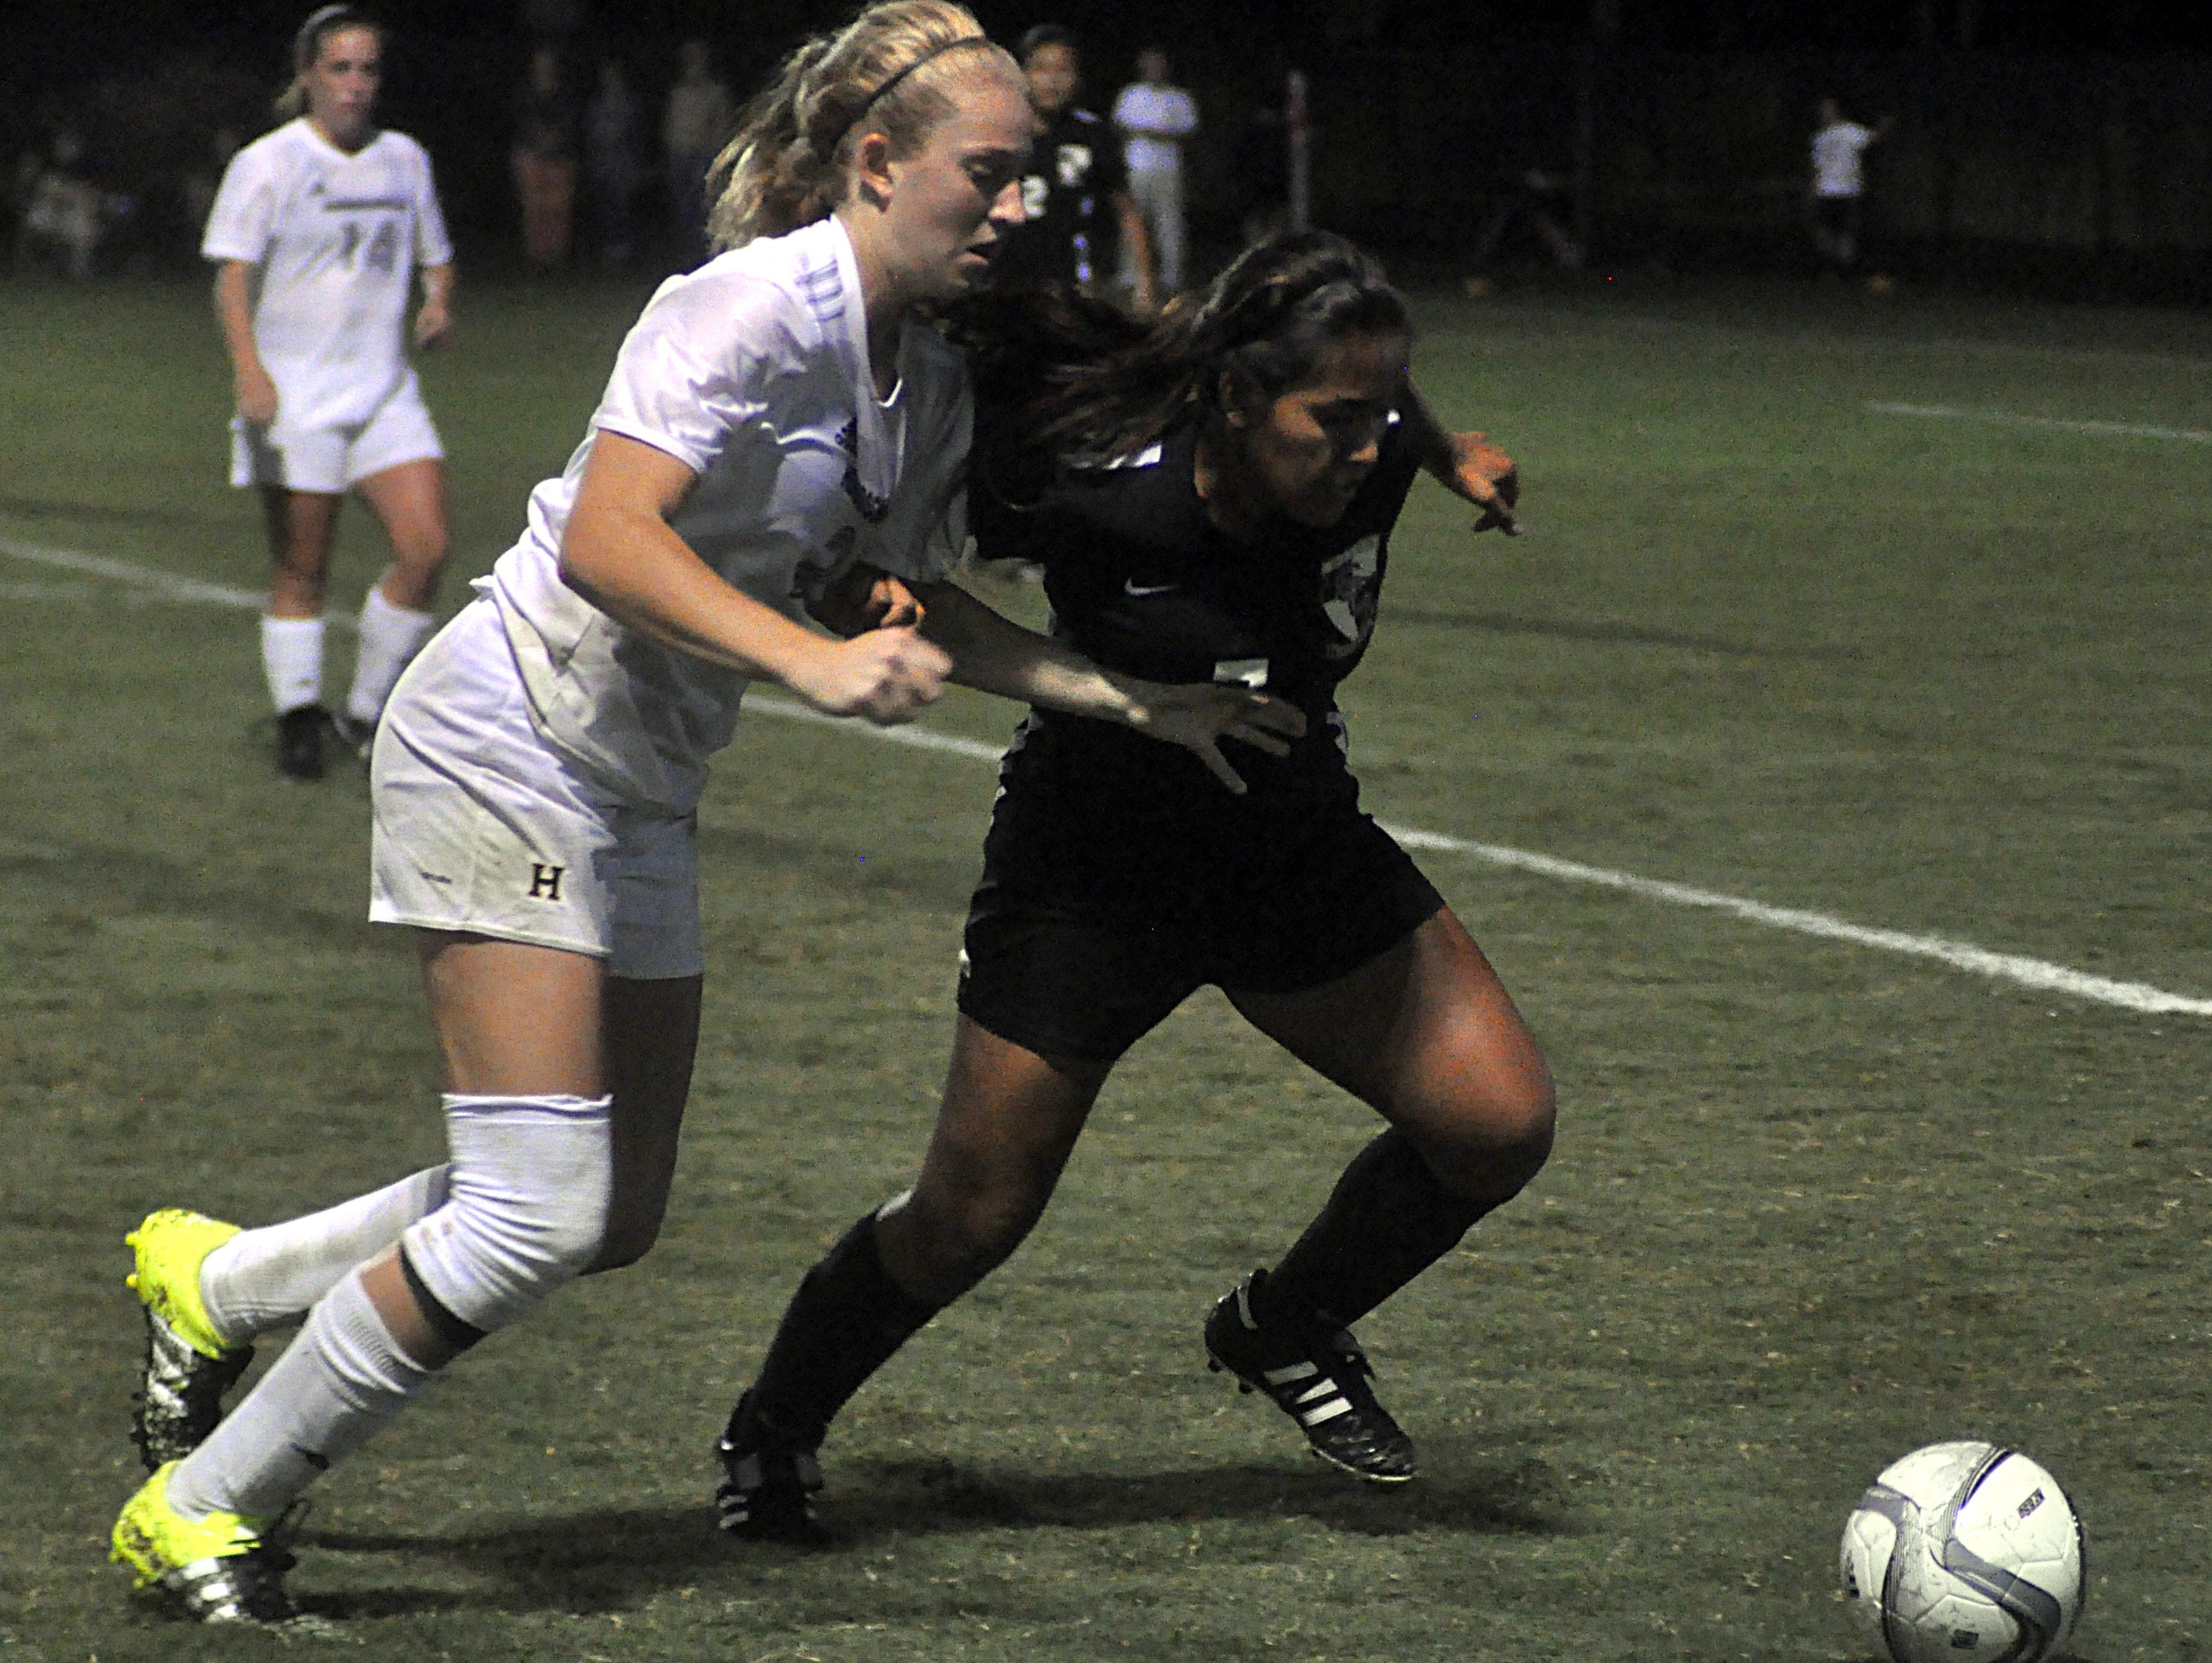 Hendersonville High sophomore Brooke Long (left) battles with Station Camp senior Heidy Orellana for a loose ball during the first overtime period on Tuesday evening.